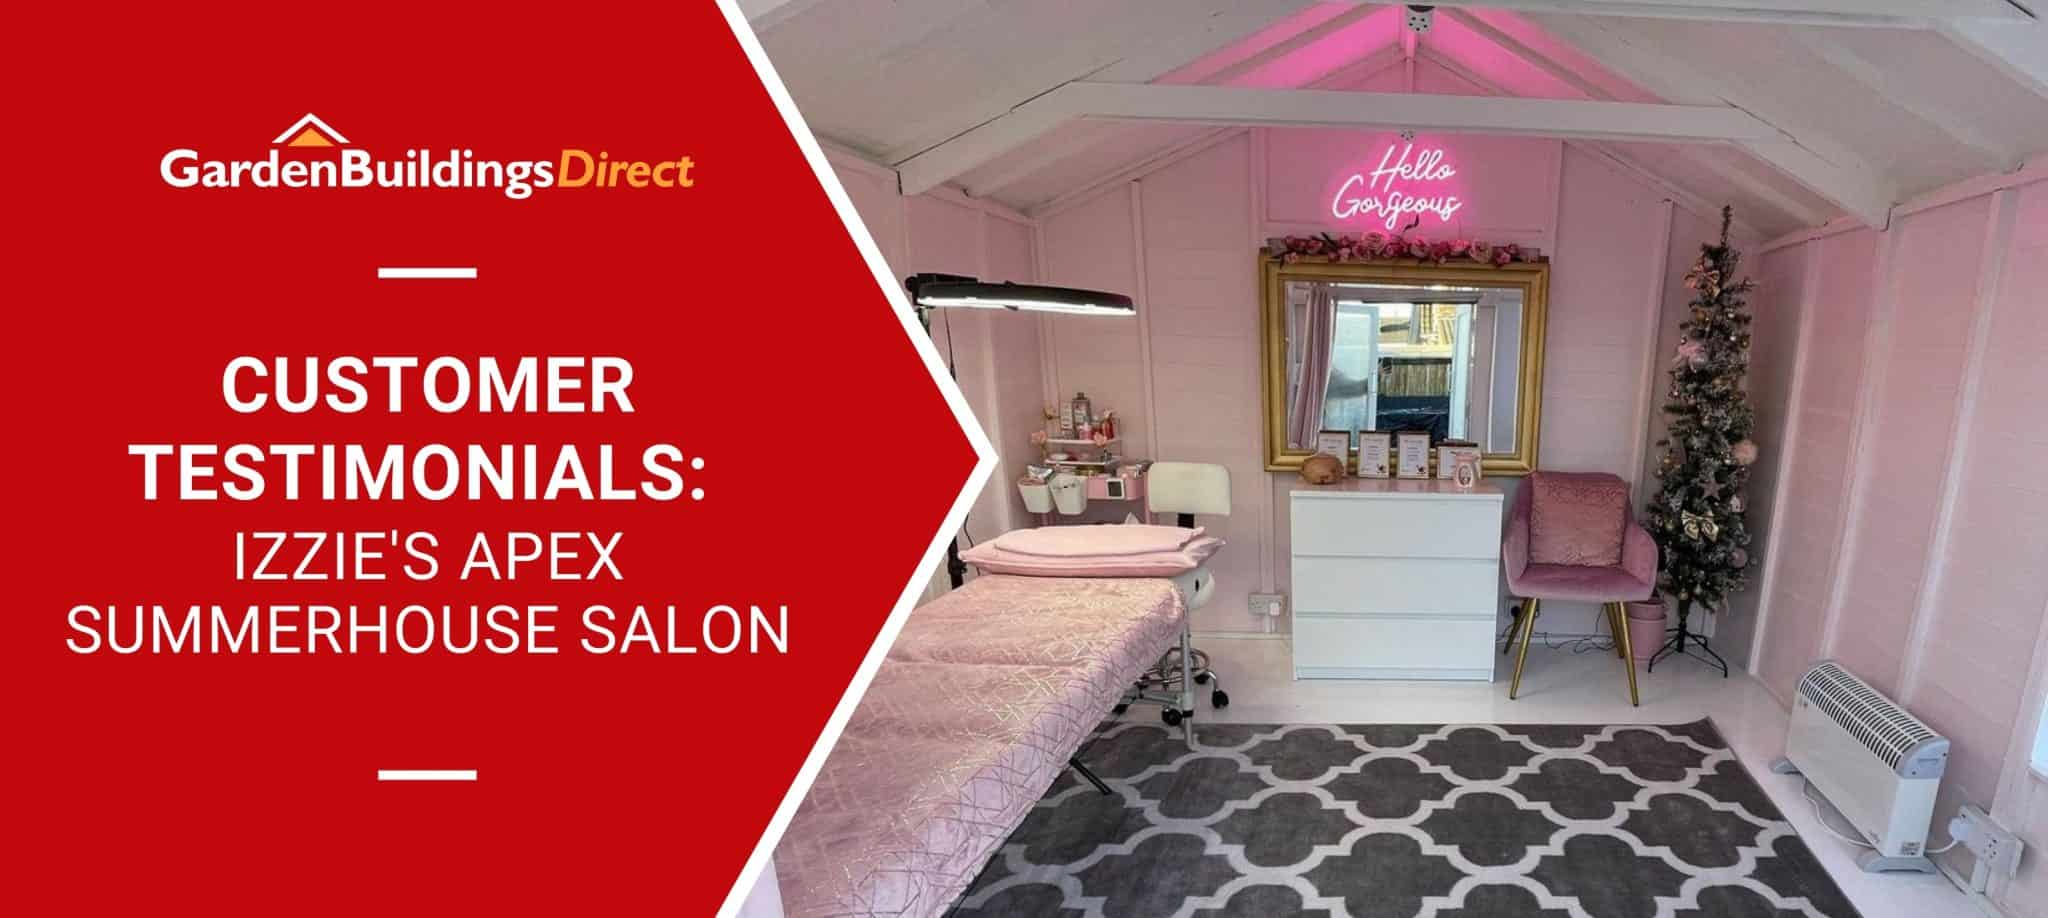 BillyOh Apex Summerhouse interior designed as a nail salon with pink neon and a masseurs bed